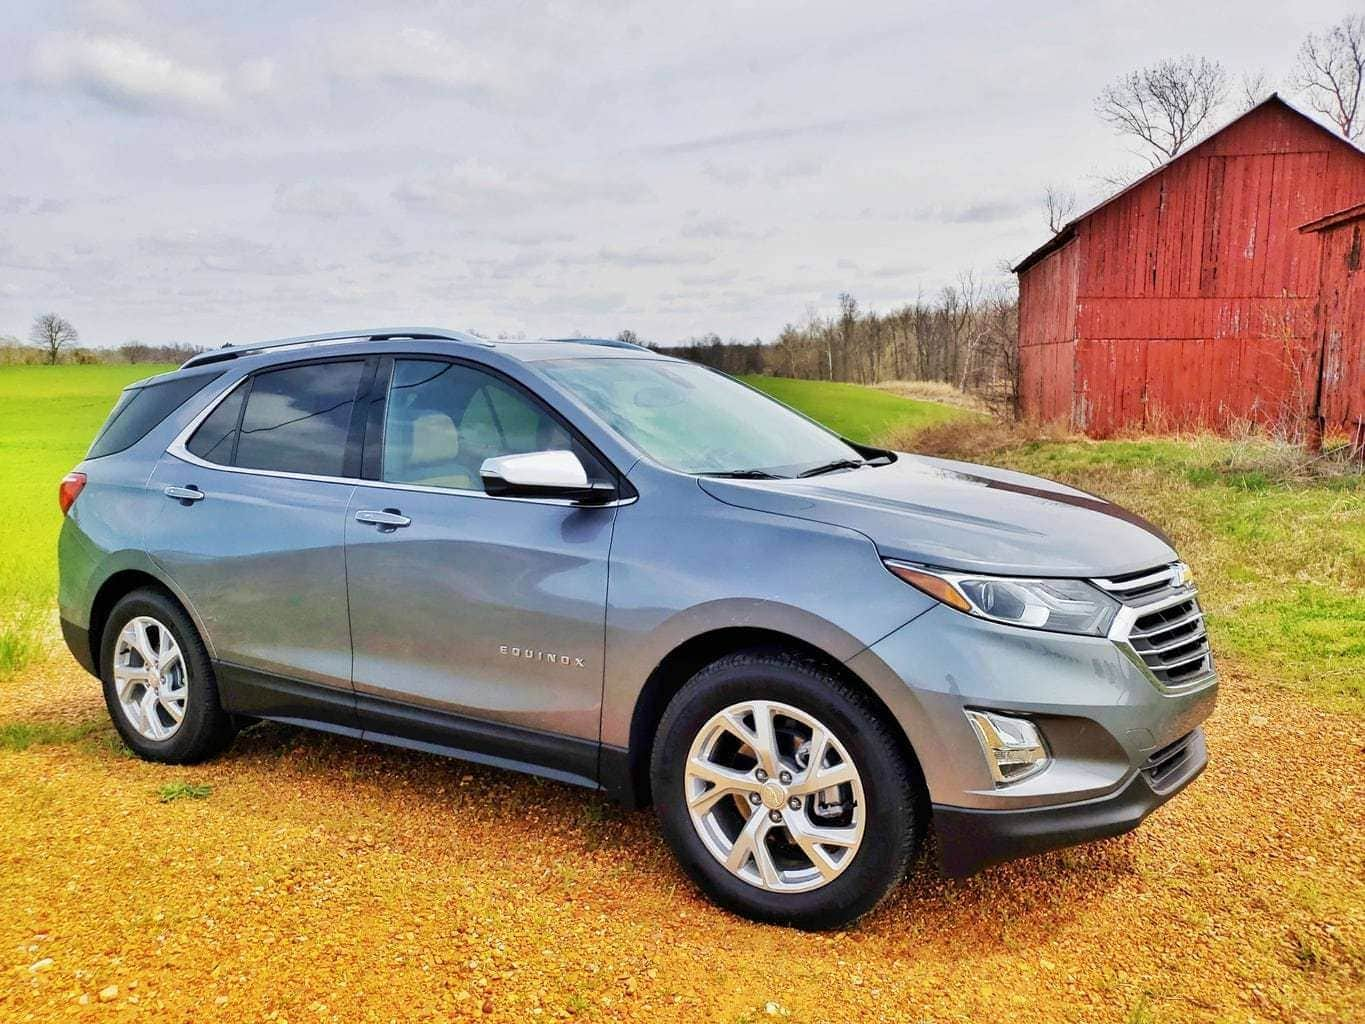 Road Tripping to Missouri in the 2018 Chevrolet Equinox Diesel